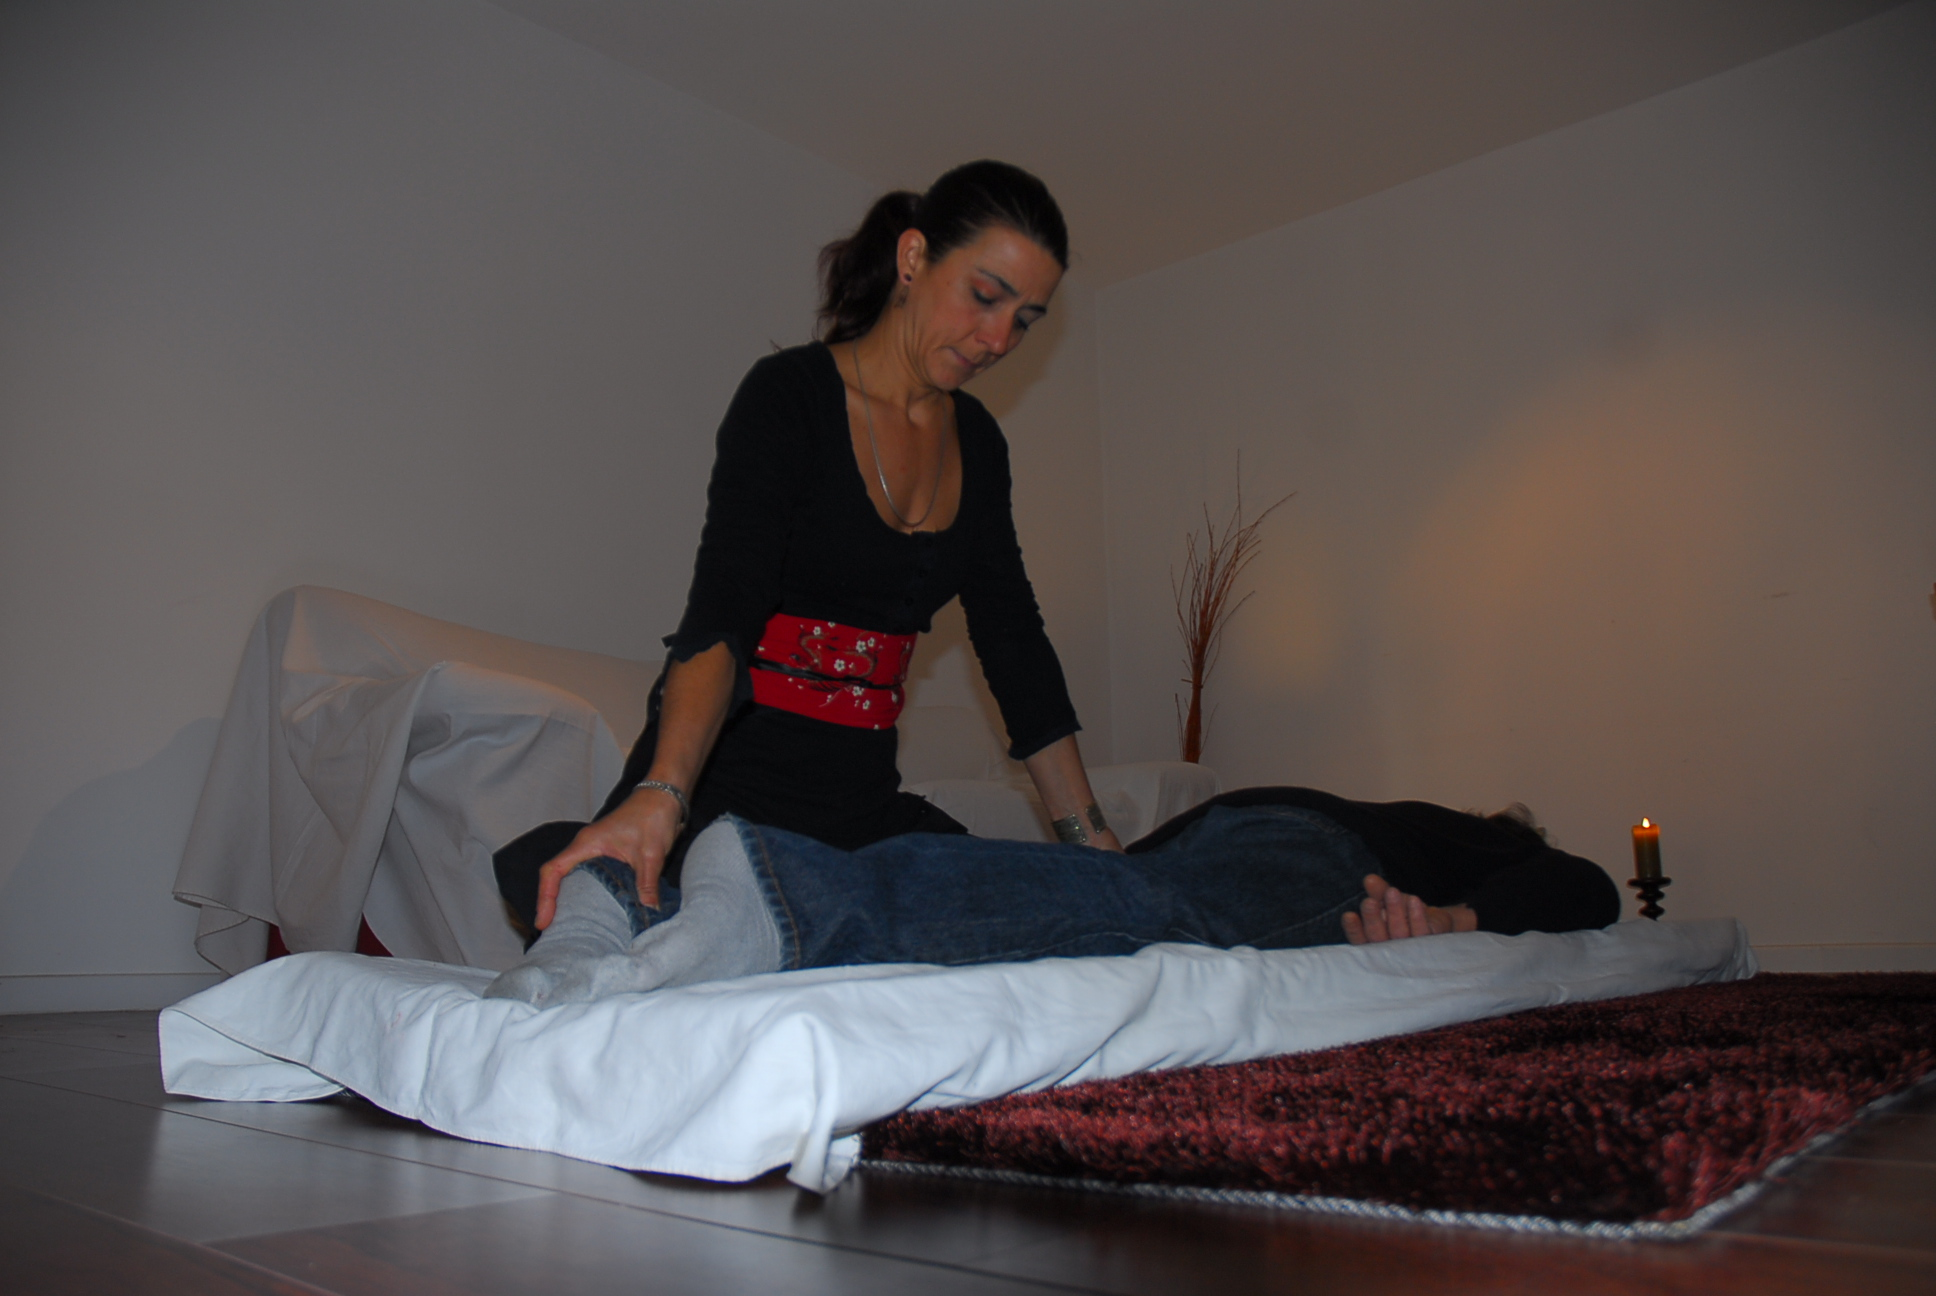 https://static.blog4ever.com/2012/11/720911/shiatsu-QI-photo-blog-bonjour-bien-etre.JPG